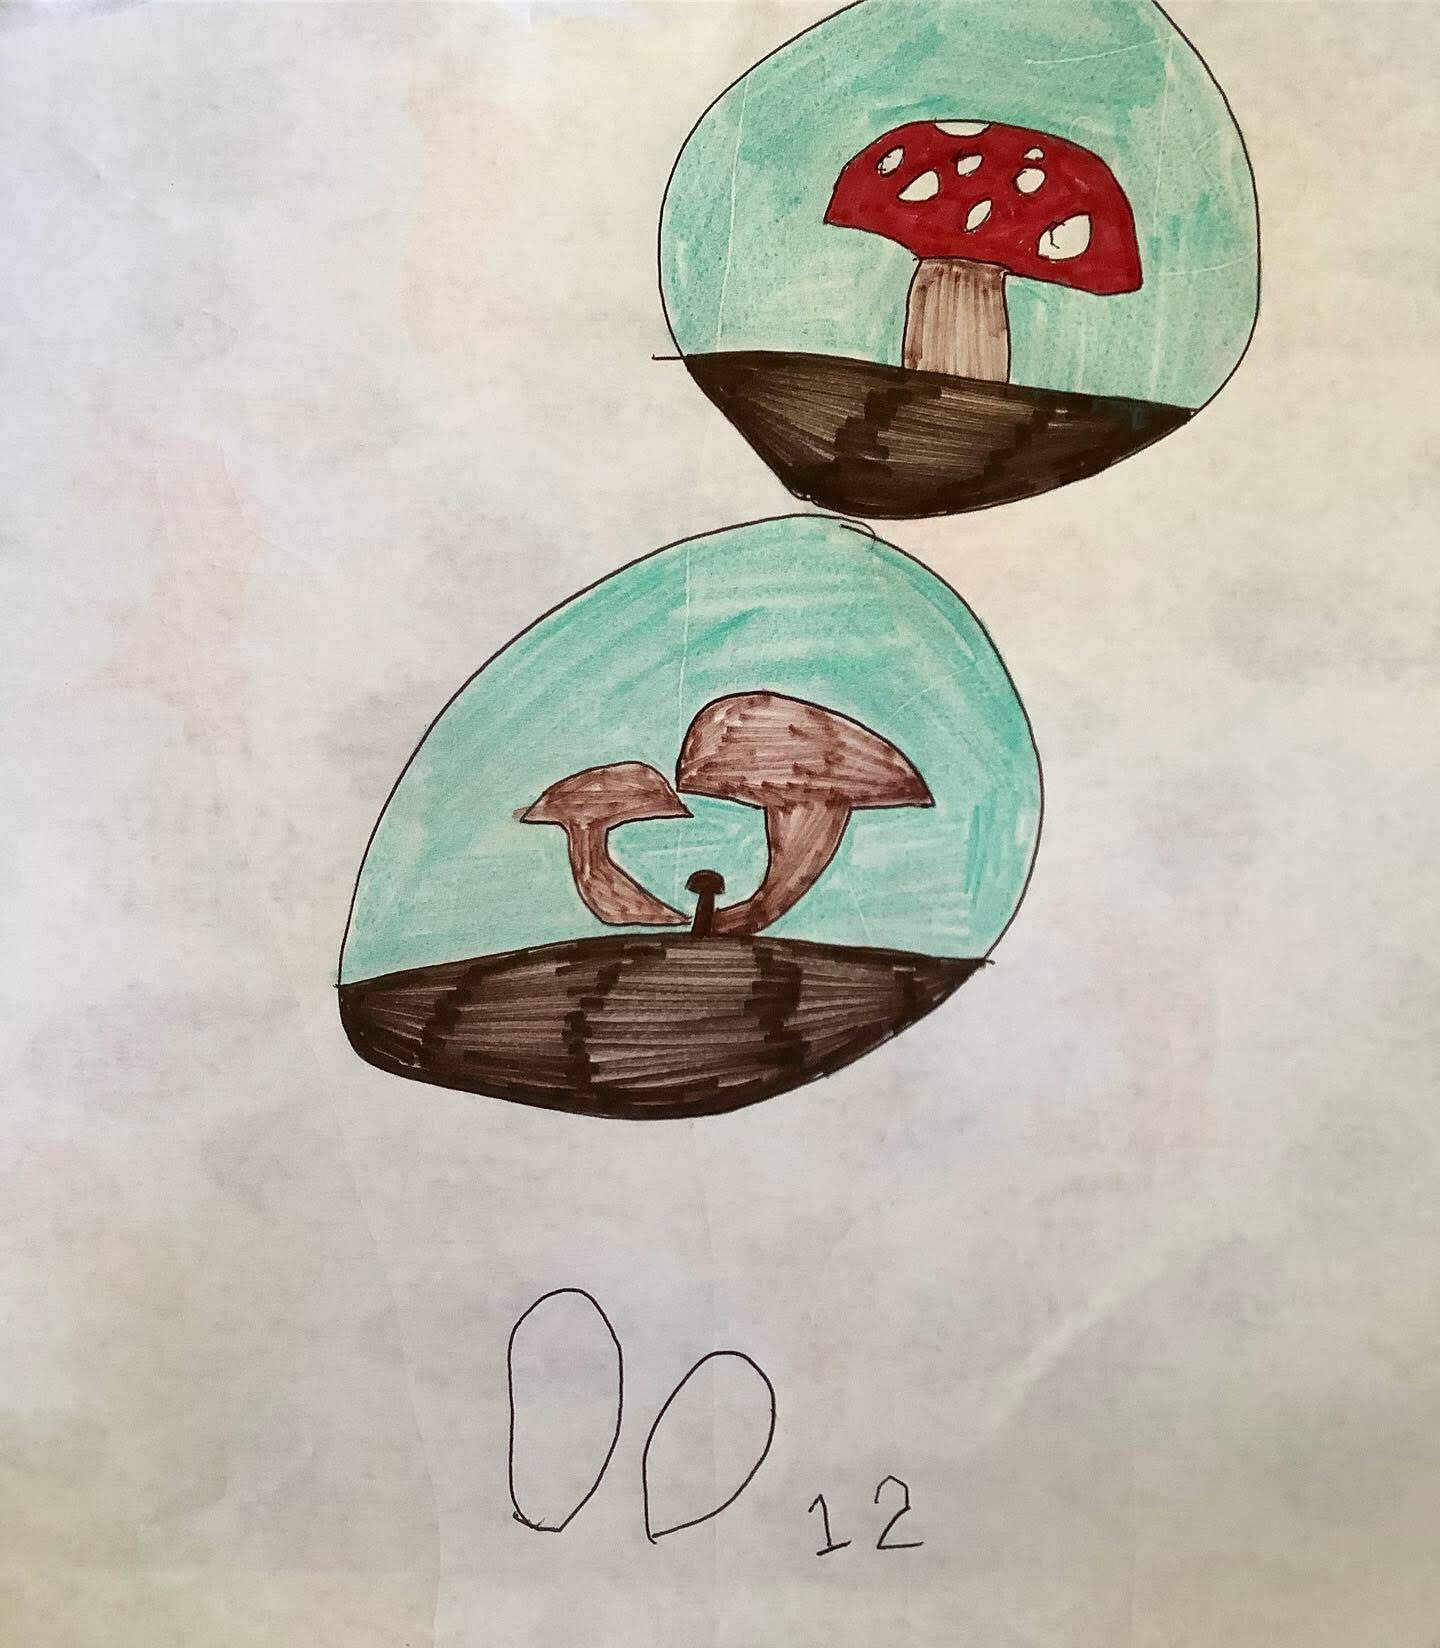 Young child's drawing of the Forest app, with mushrooms growing in circles